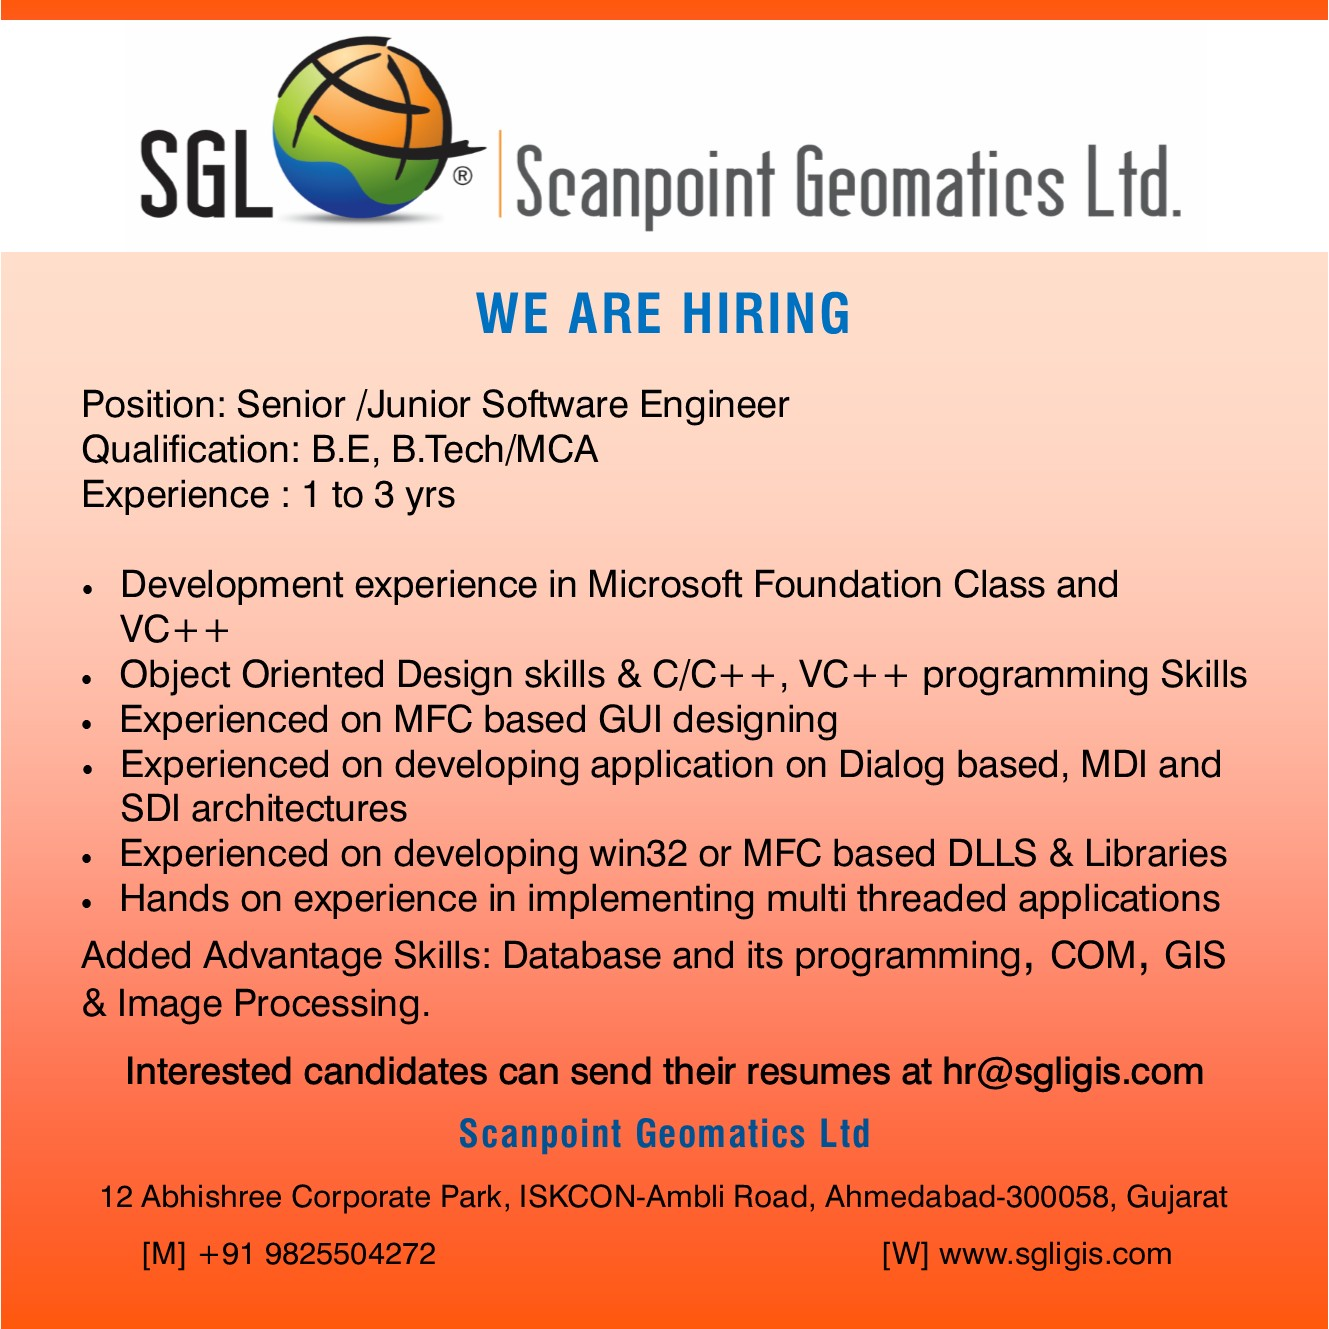 Scanpoint Geomatics Limited